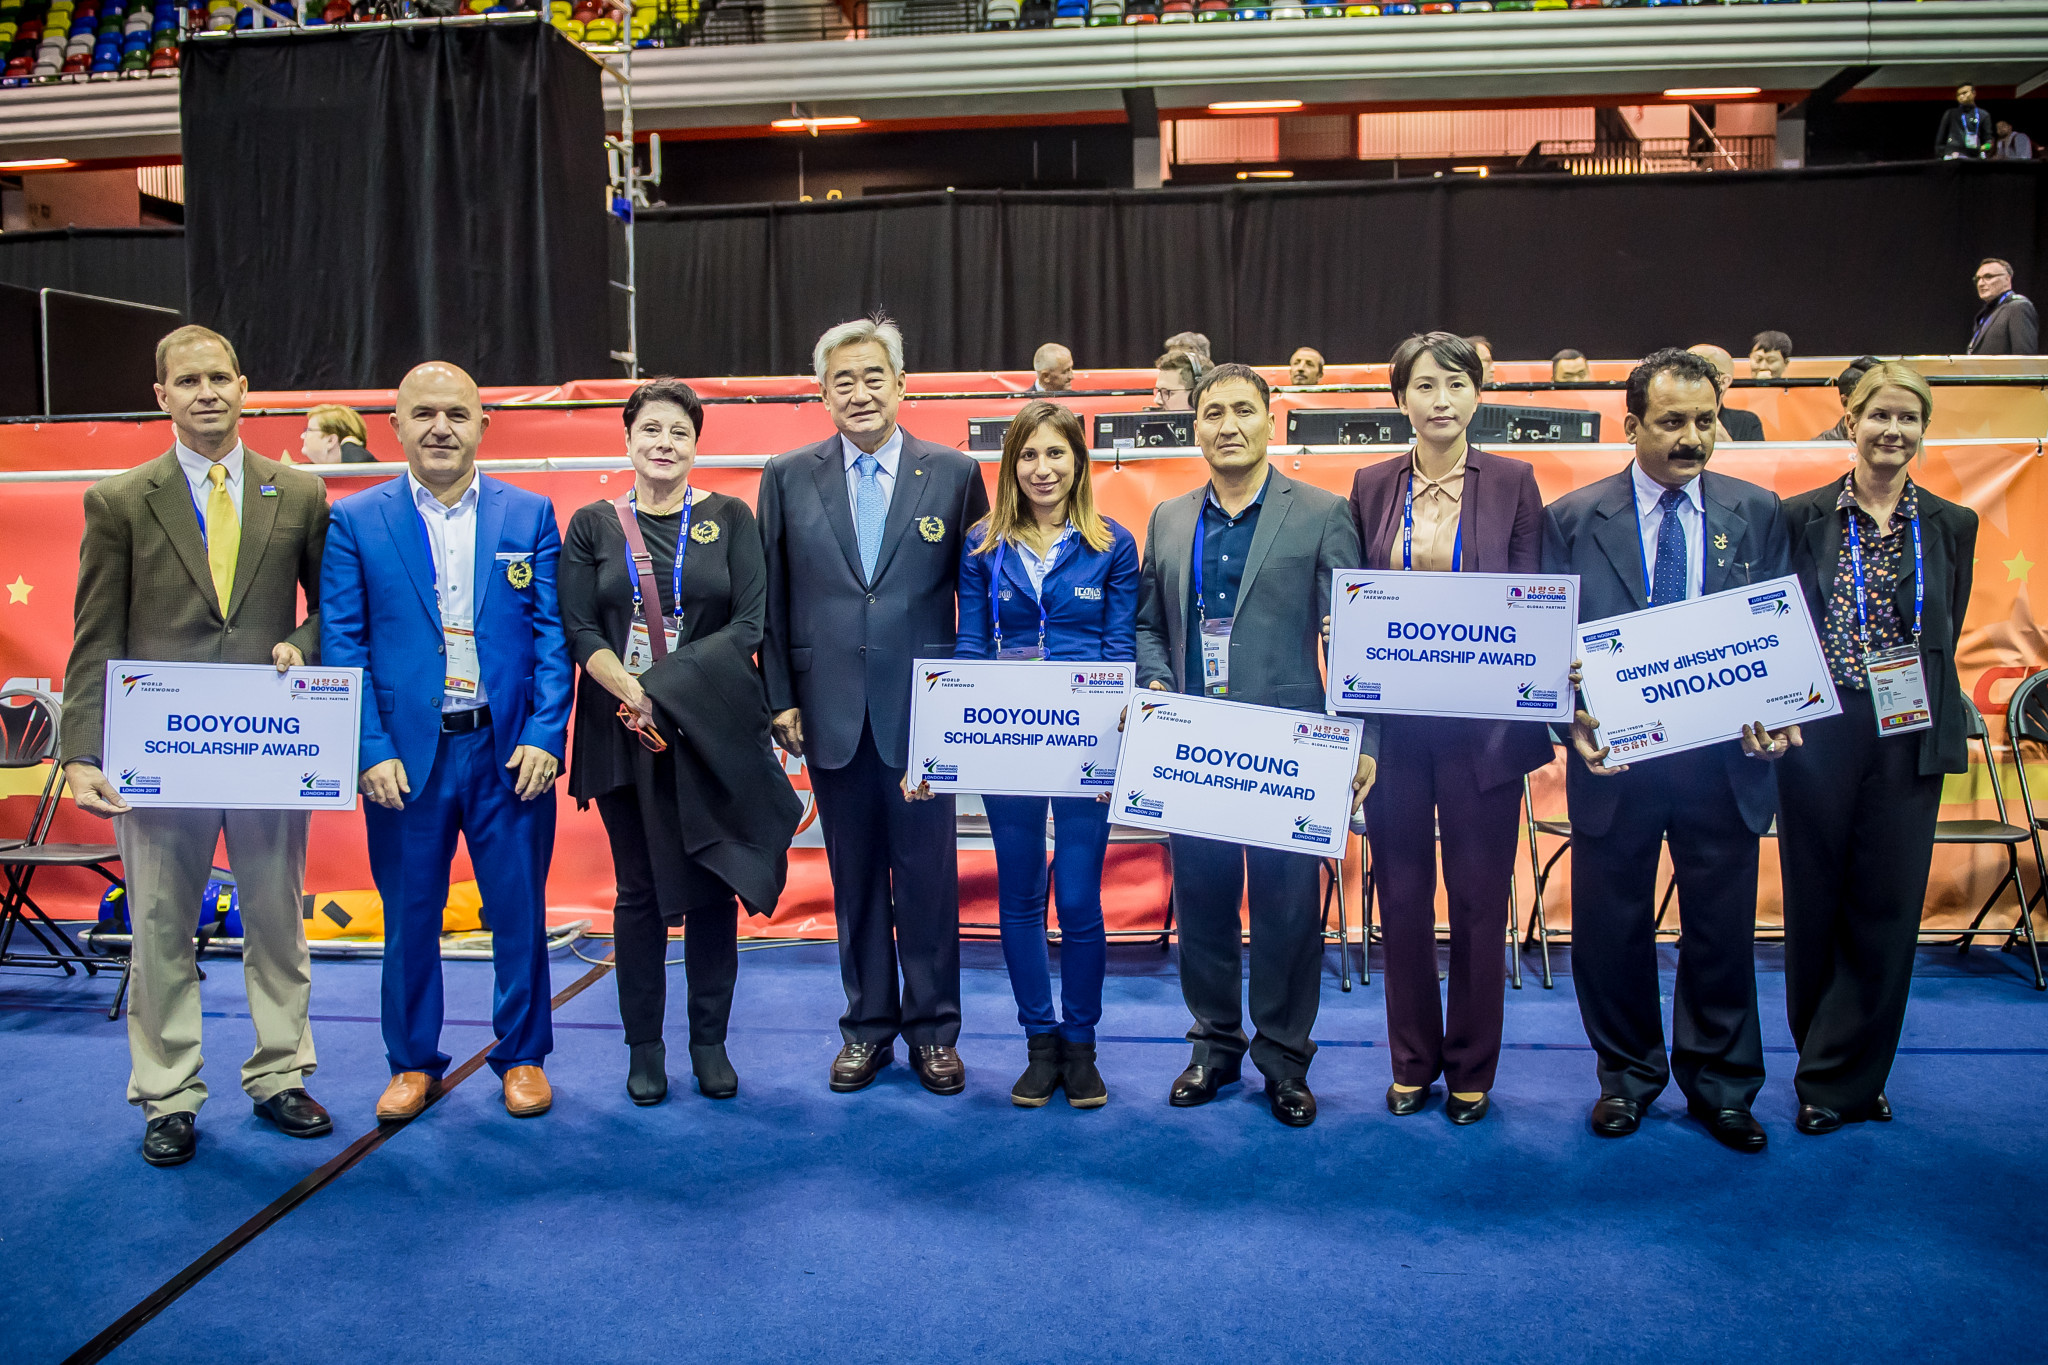 A number of countries were given a Booyoung Scholarship Award ©World Taekwondo